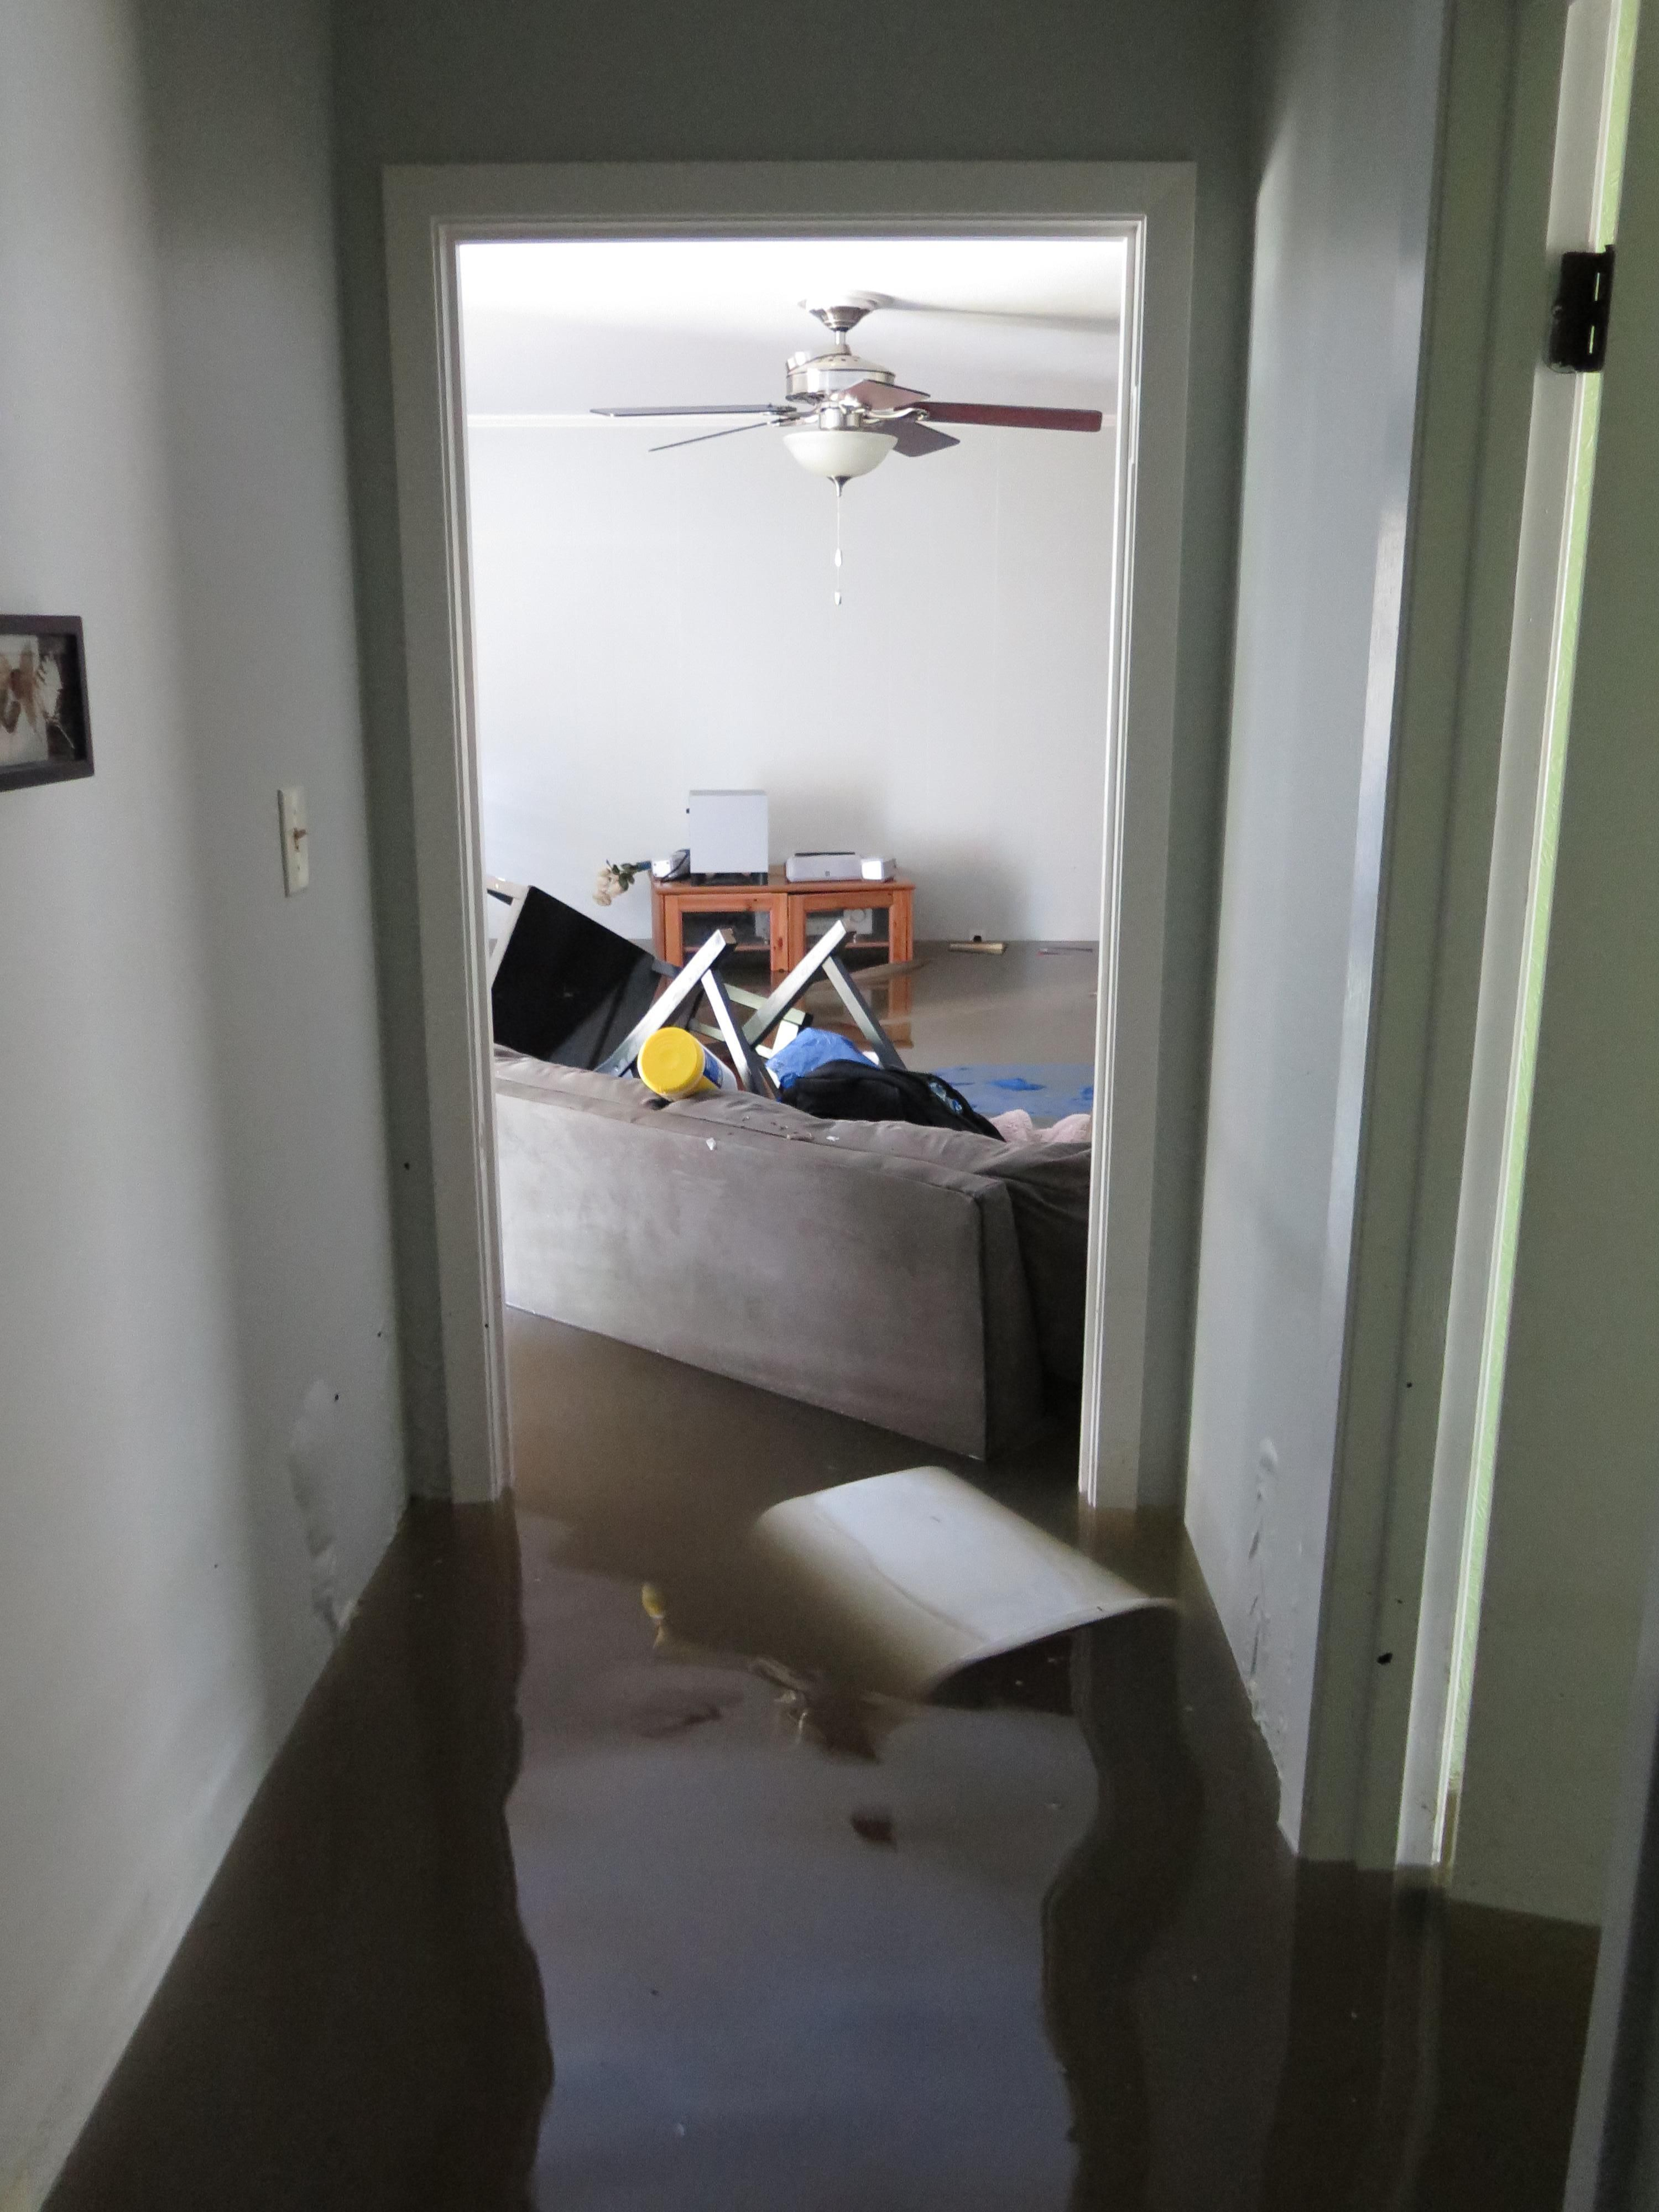 My House Was One Of Thousands That Flooded In Baton Rouge Last Week Here S Some Eerie Pictures From The Inside Http Ift Tt 2bfvhns House My House Flood